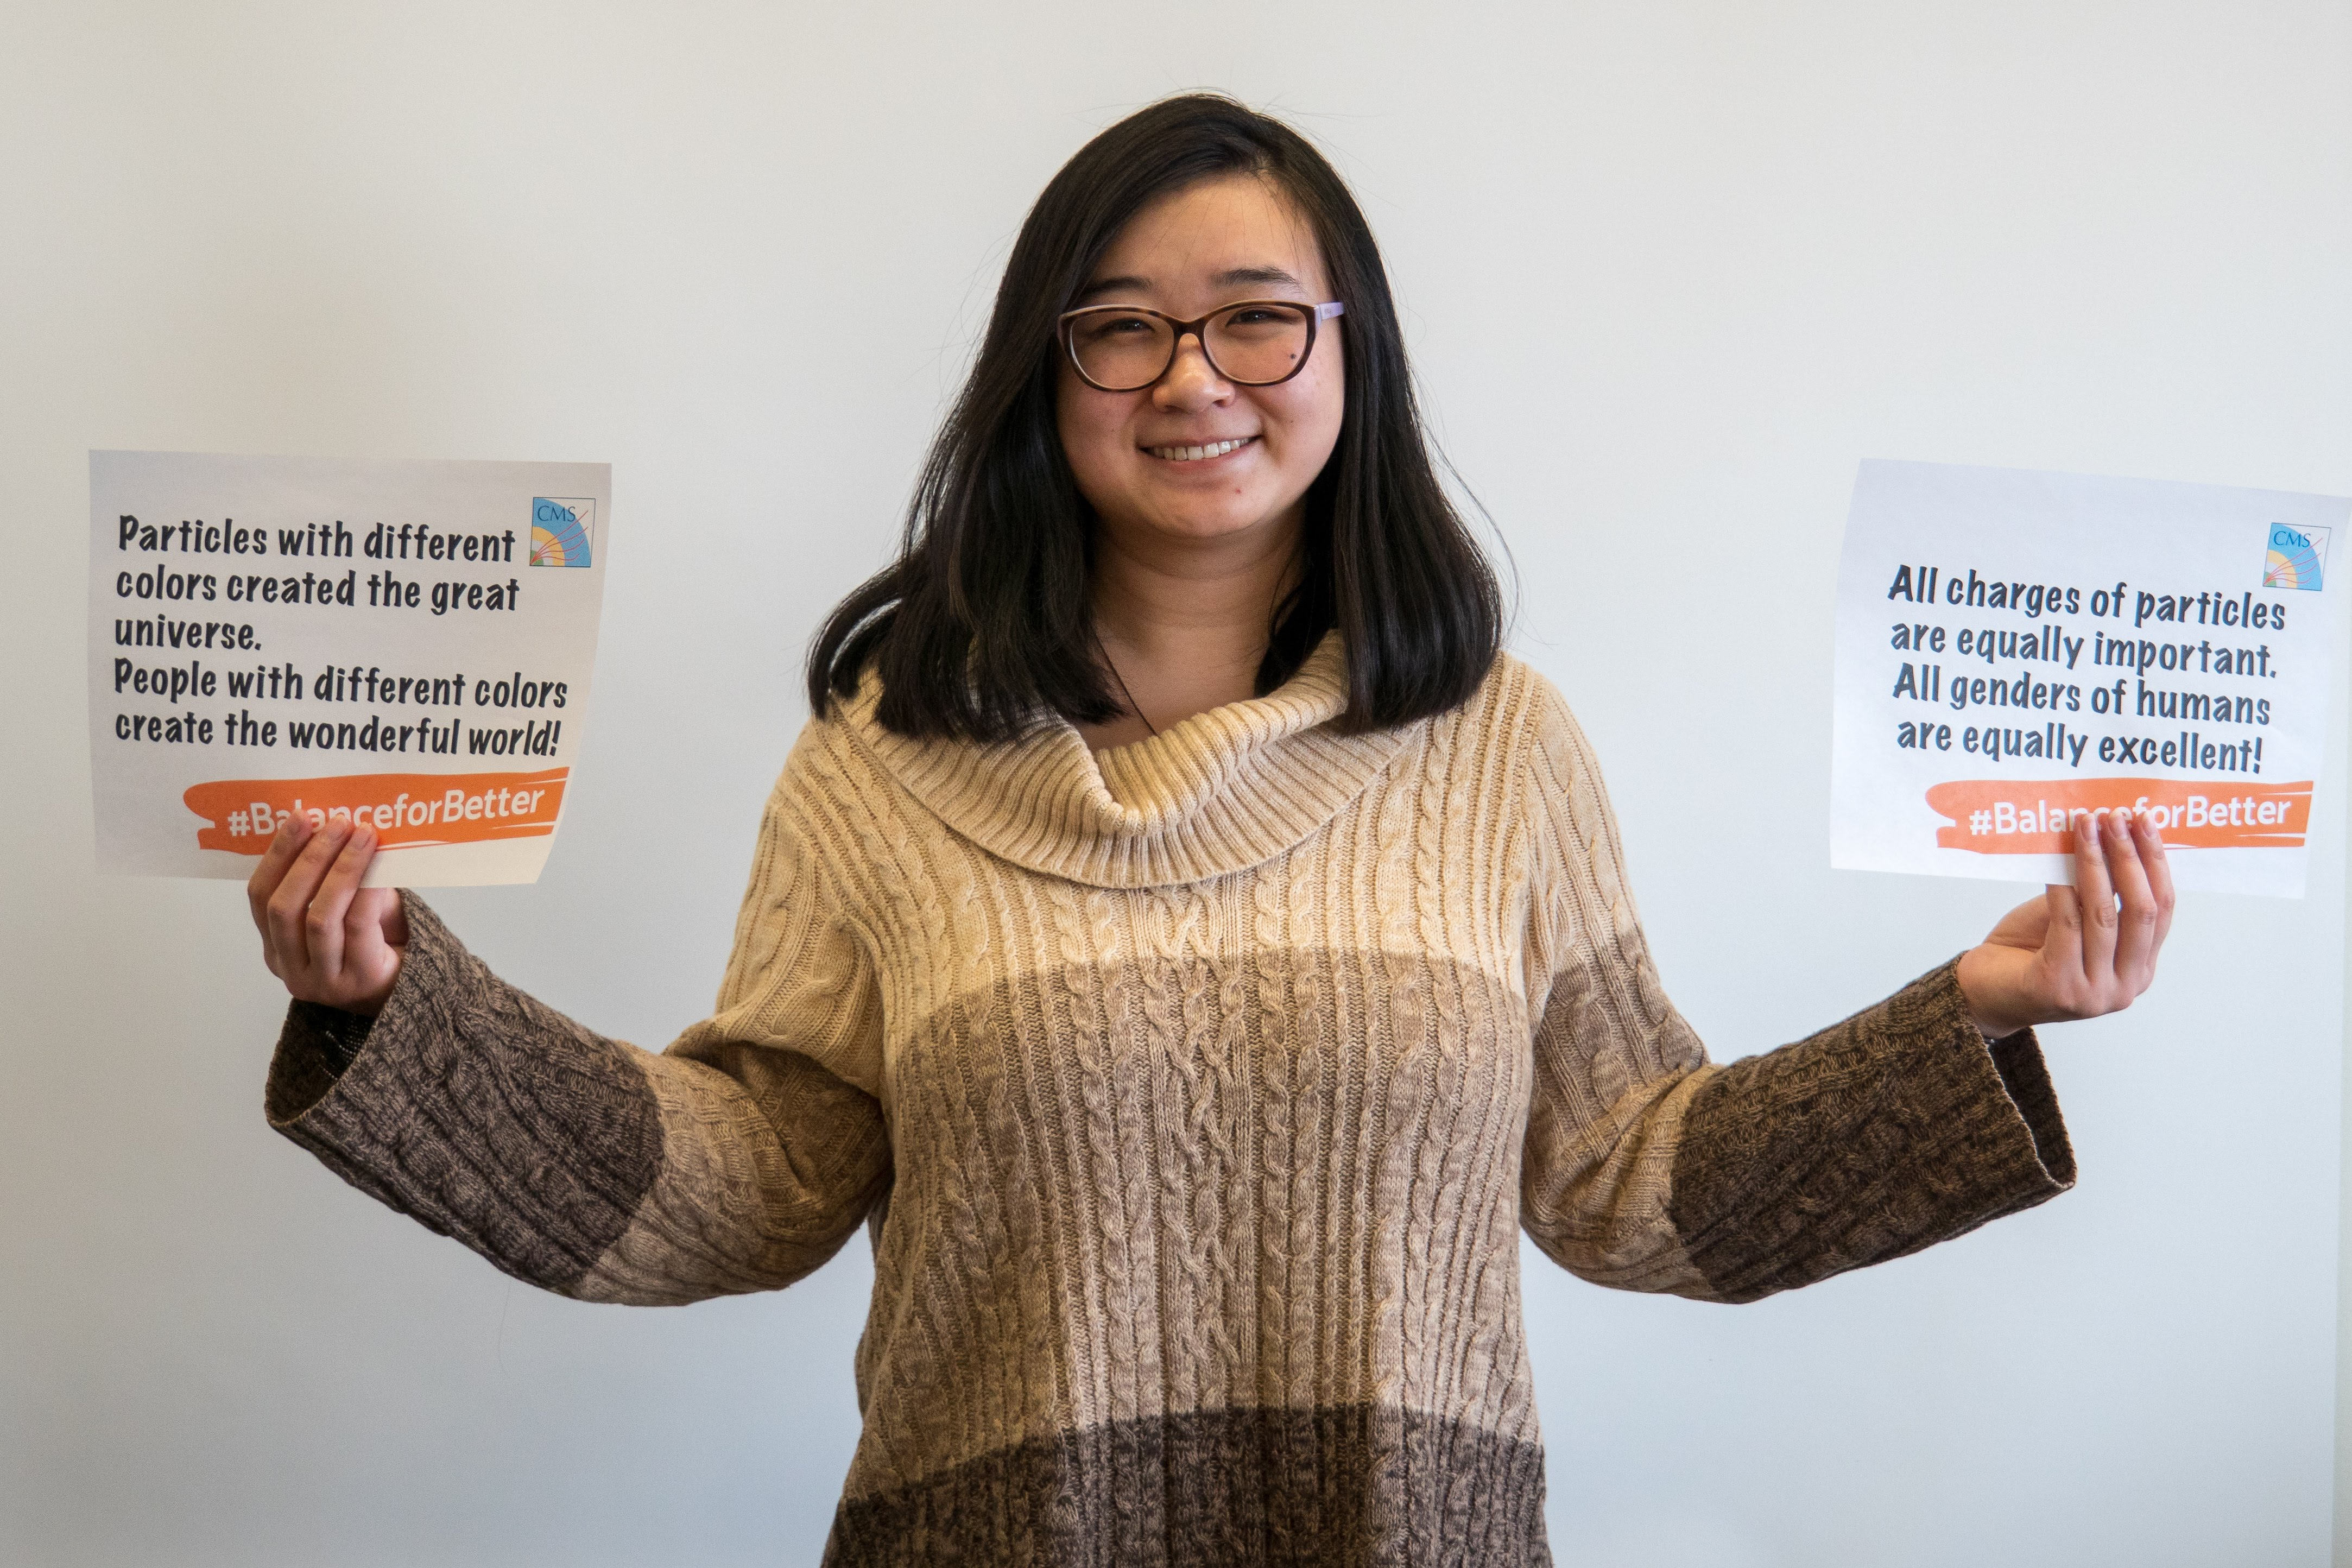 (3/3) Xuan Chen has two messages about #BalanceForBetter: Particles with different colors created the great universe. People with different colors create the wonderful world! All charges of particles are equally important. All genders of humans are equally excellent! people, diversity Photo: Marguerite Tonjes